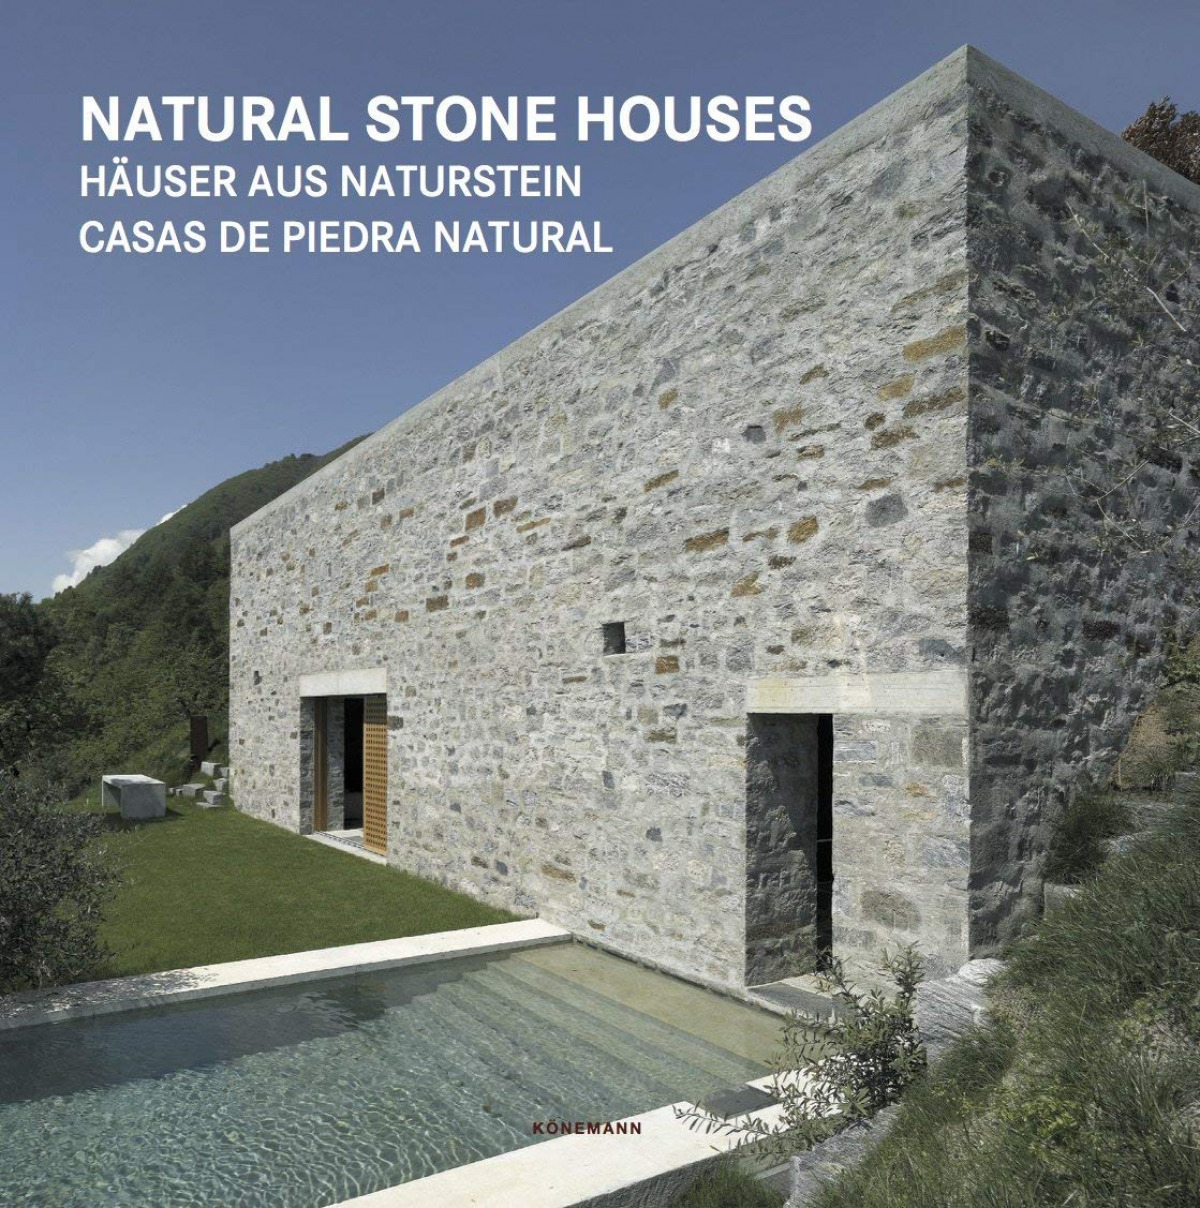 NATURAL STONE HOUSES 9783741920530